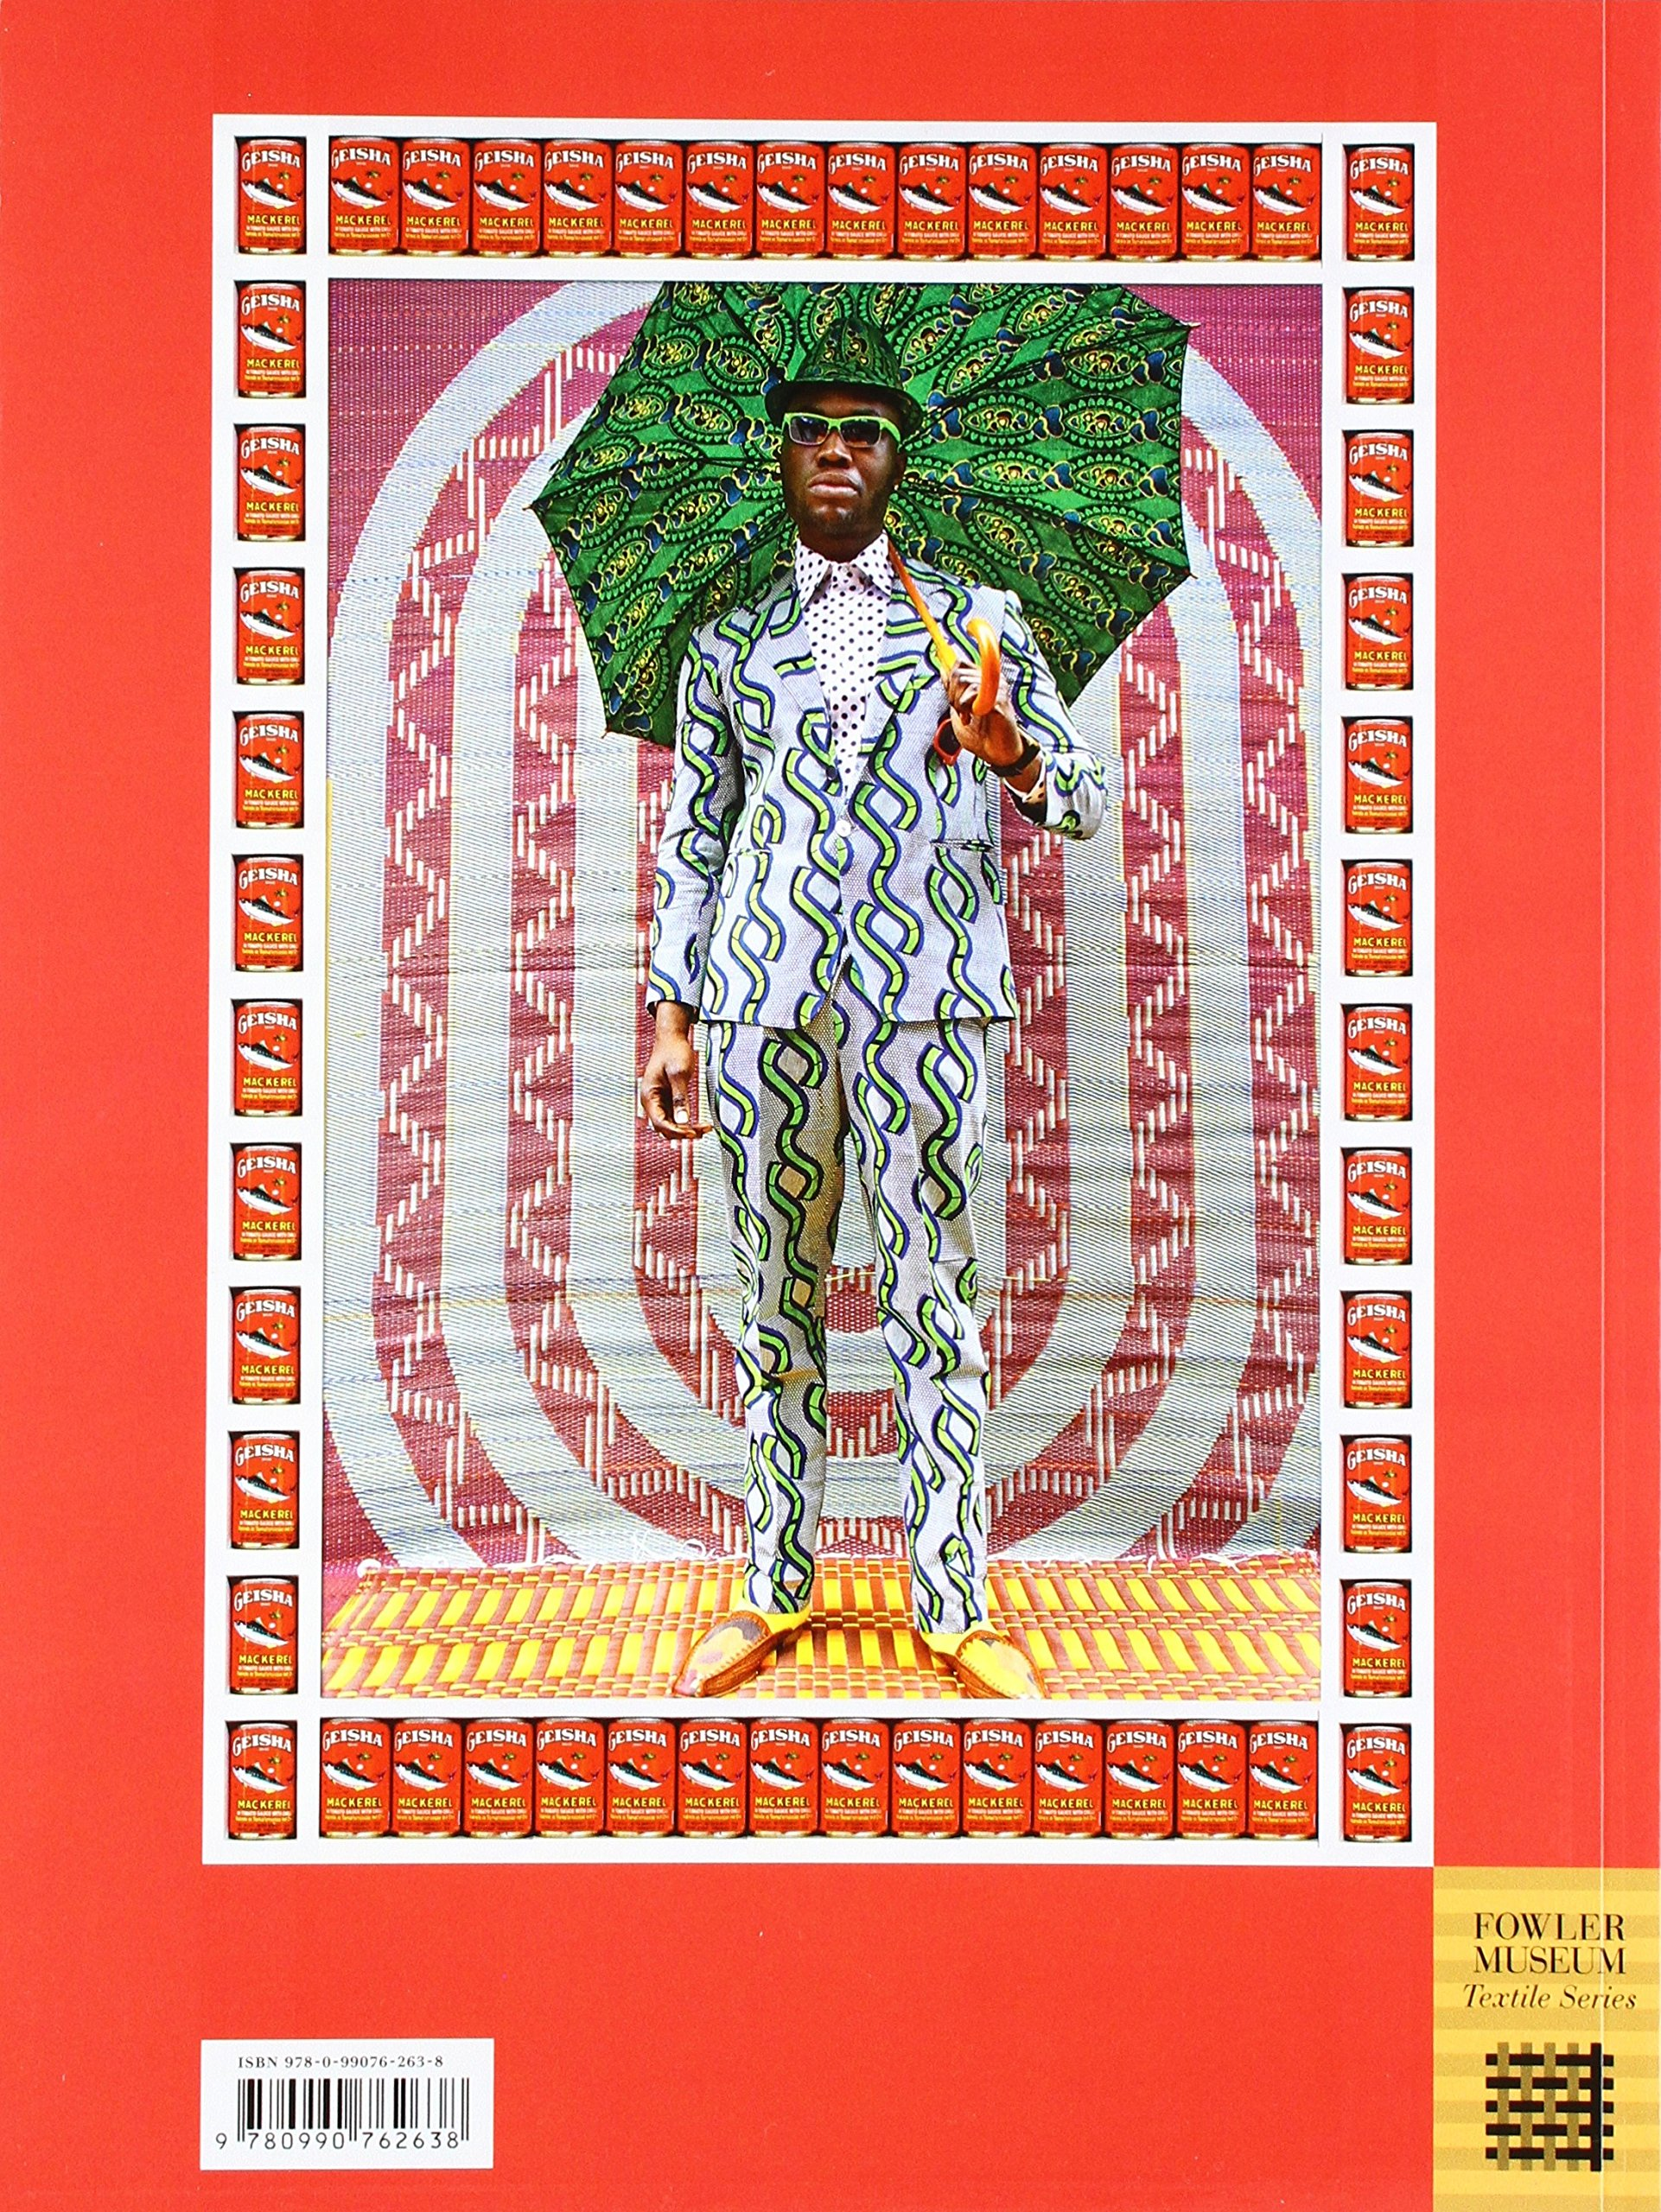 African-Print Fashion Now!: A Story of Taste, Globalization, and Style (Fowler Museum Textile)